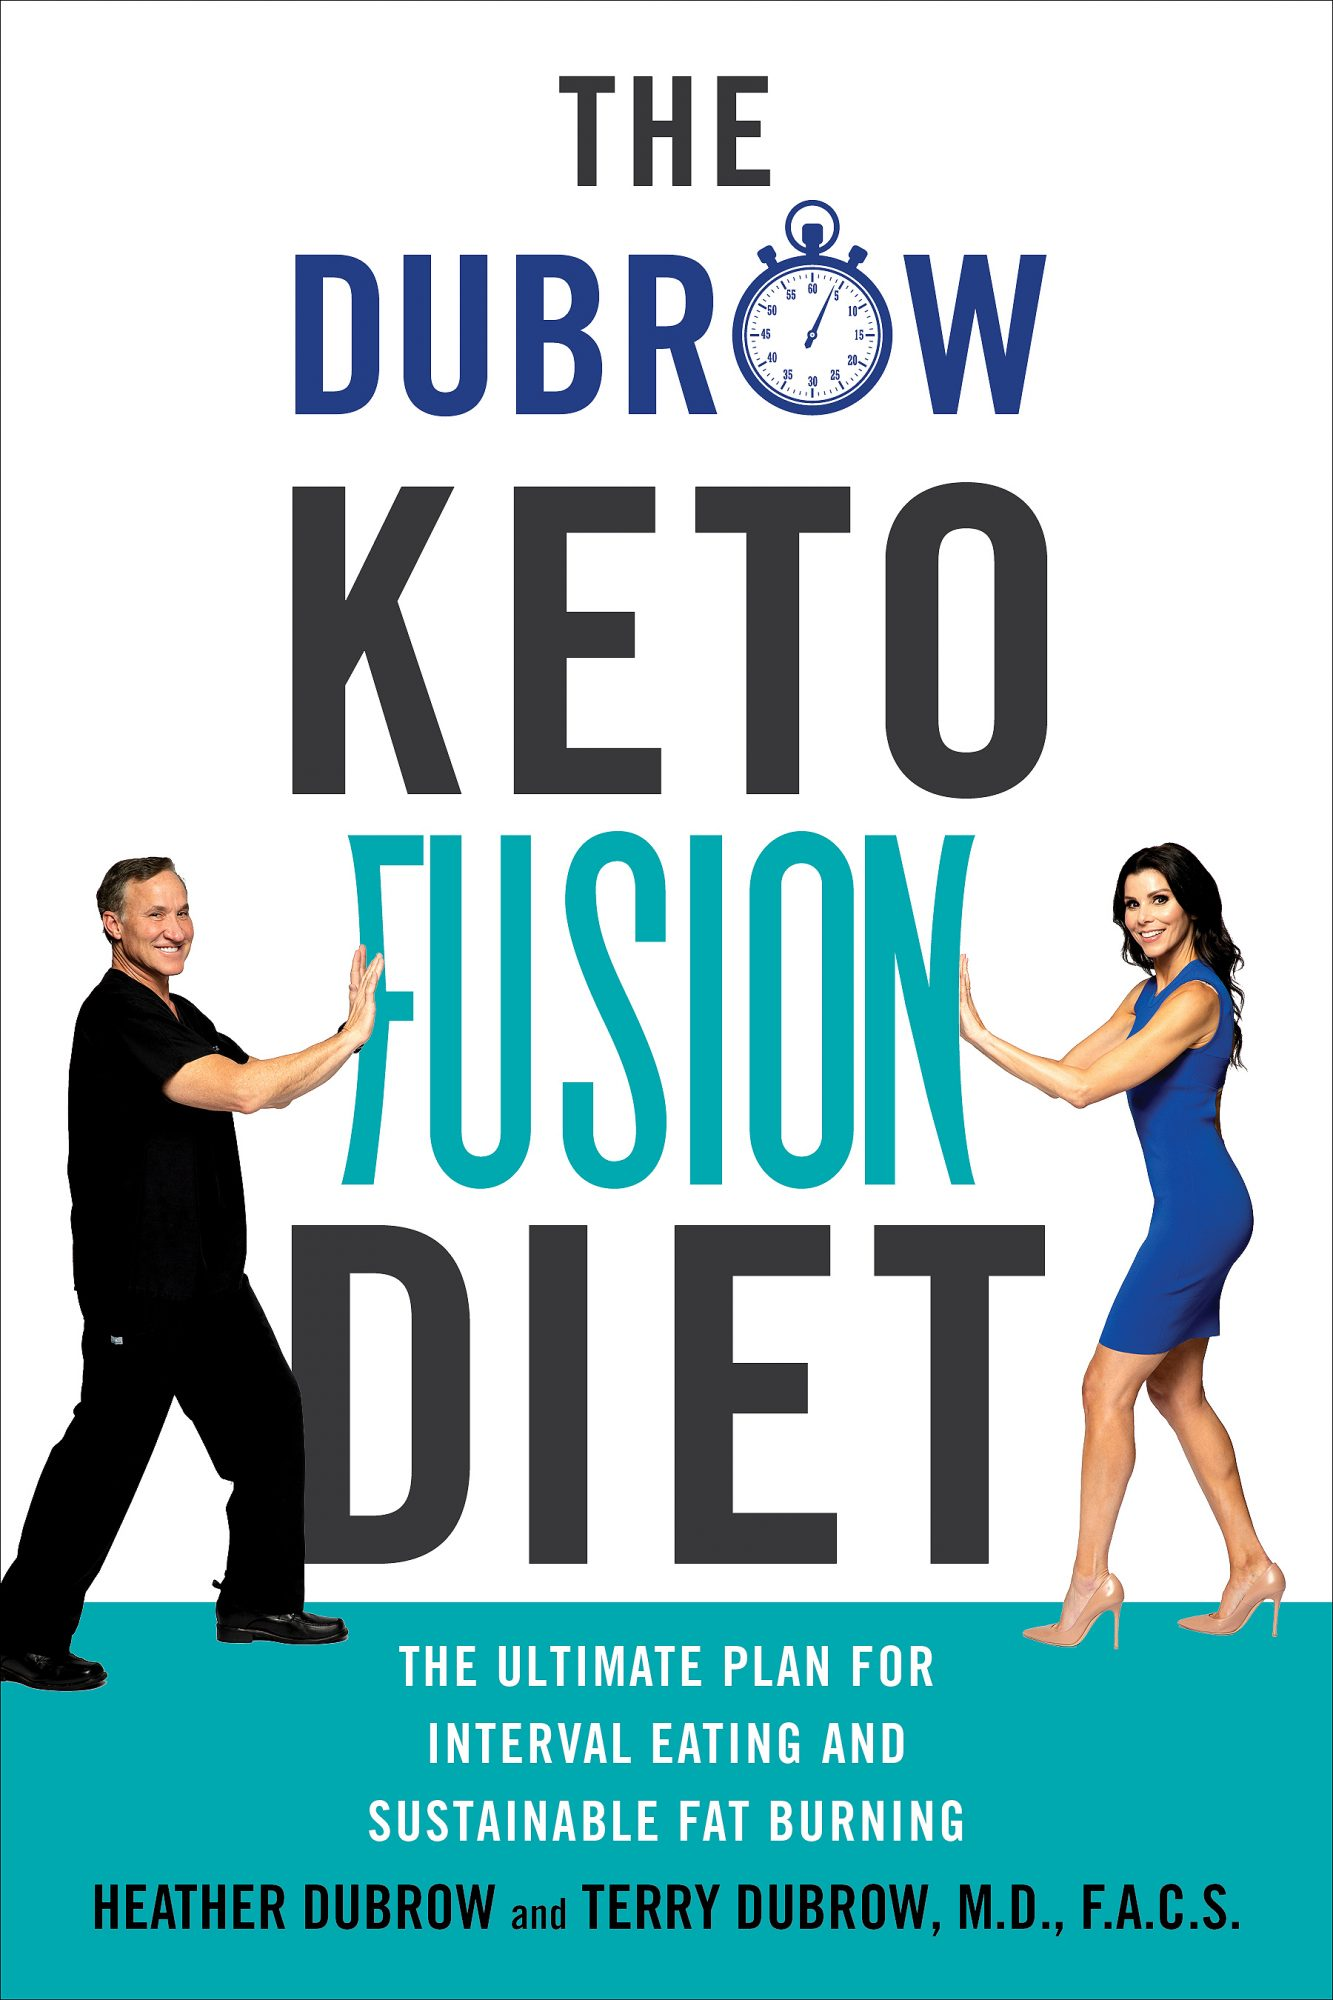 Dubrow Diet Keto